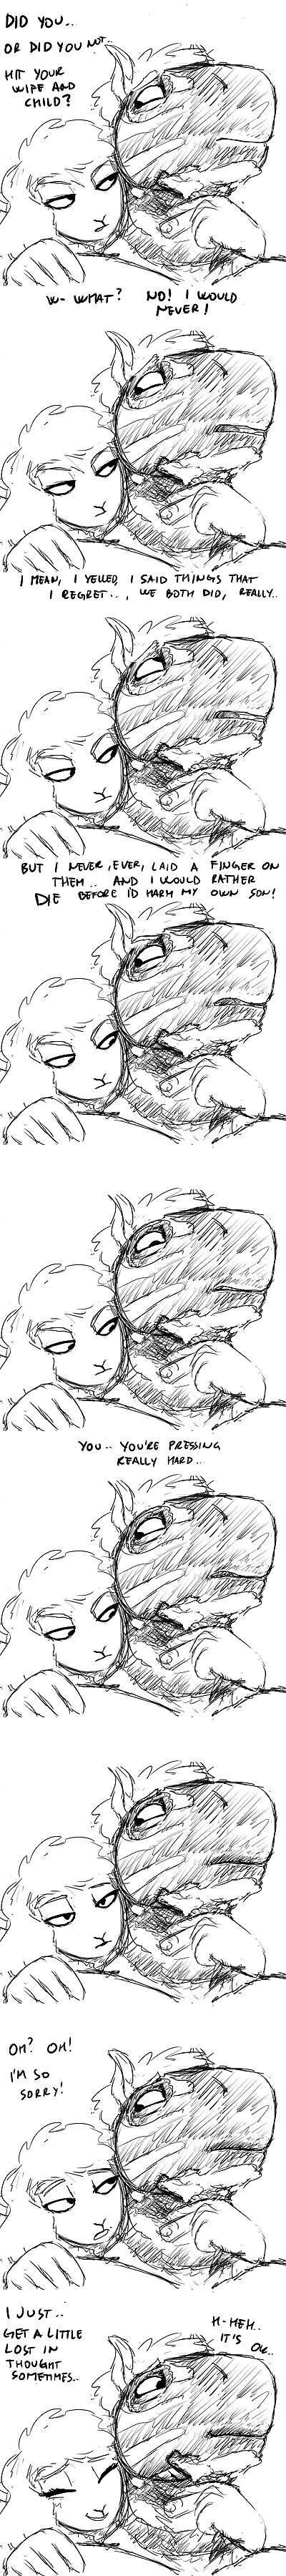 Zebra Dad and Boss Lamb